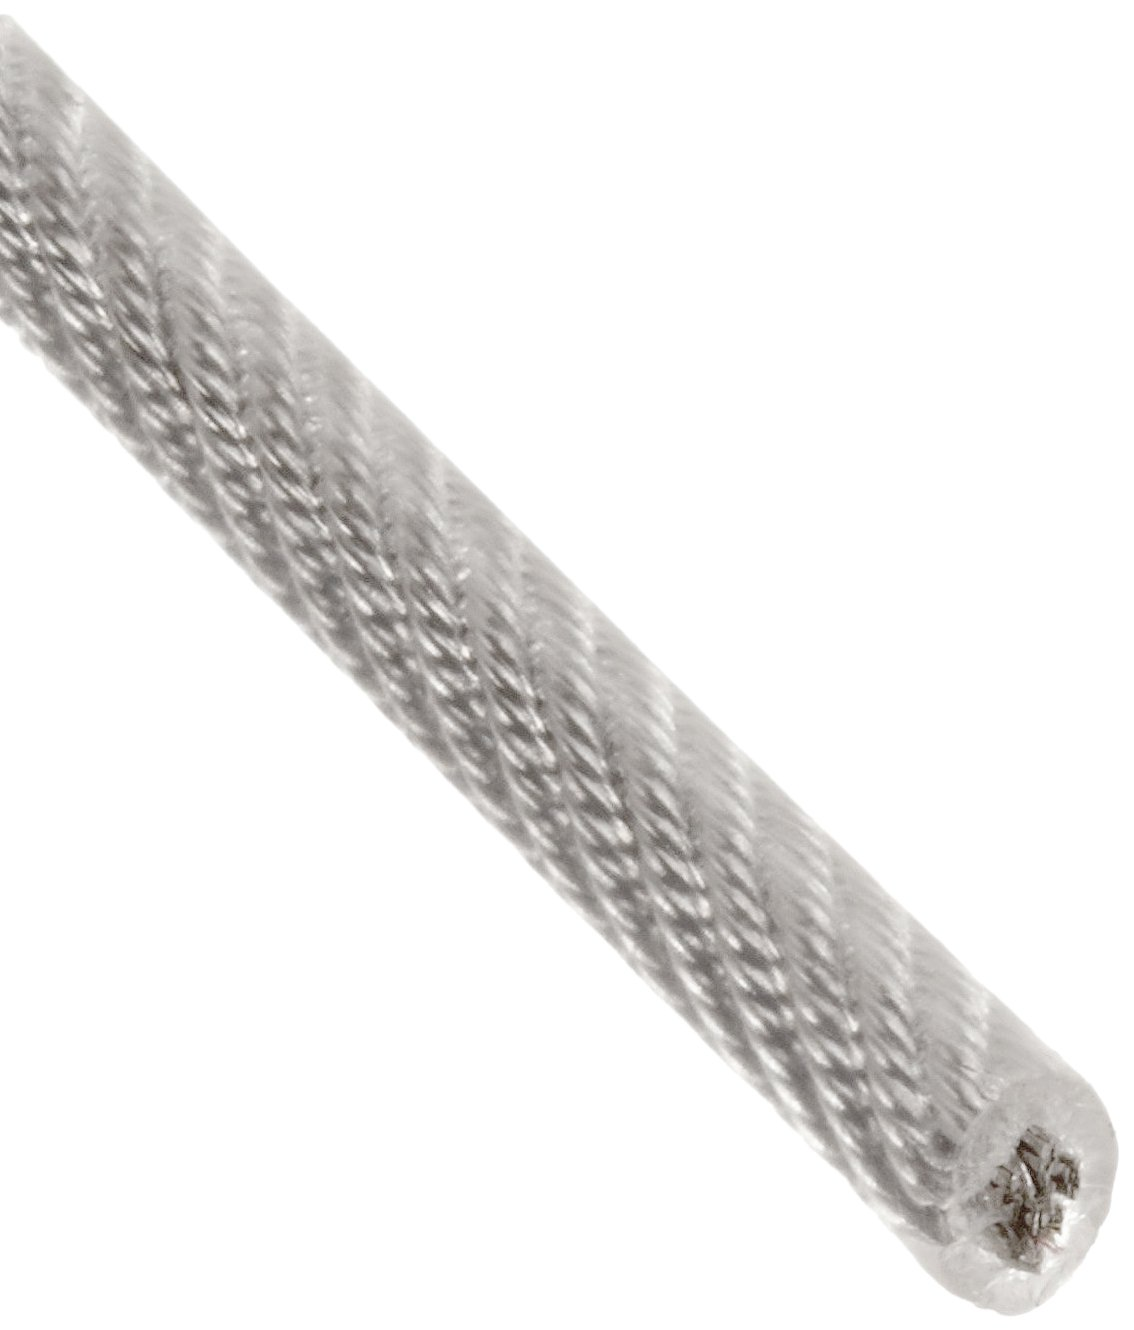 Galvanized Steel Wire Rope, Vinyl Coated, 7x7 Strand Core, 1/8'' Bare OD, 3/16'' Coated OD, 250' Length, 340 lbs Breaking Strength